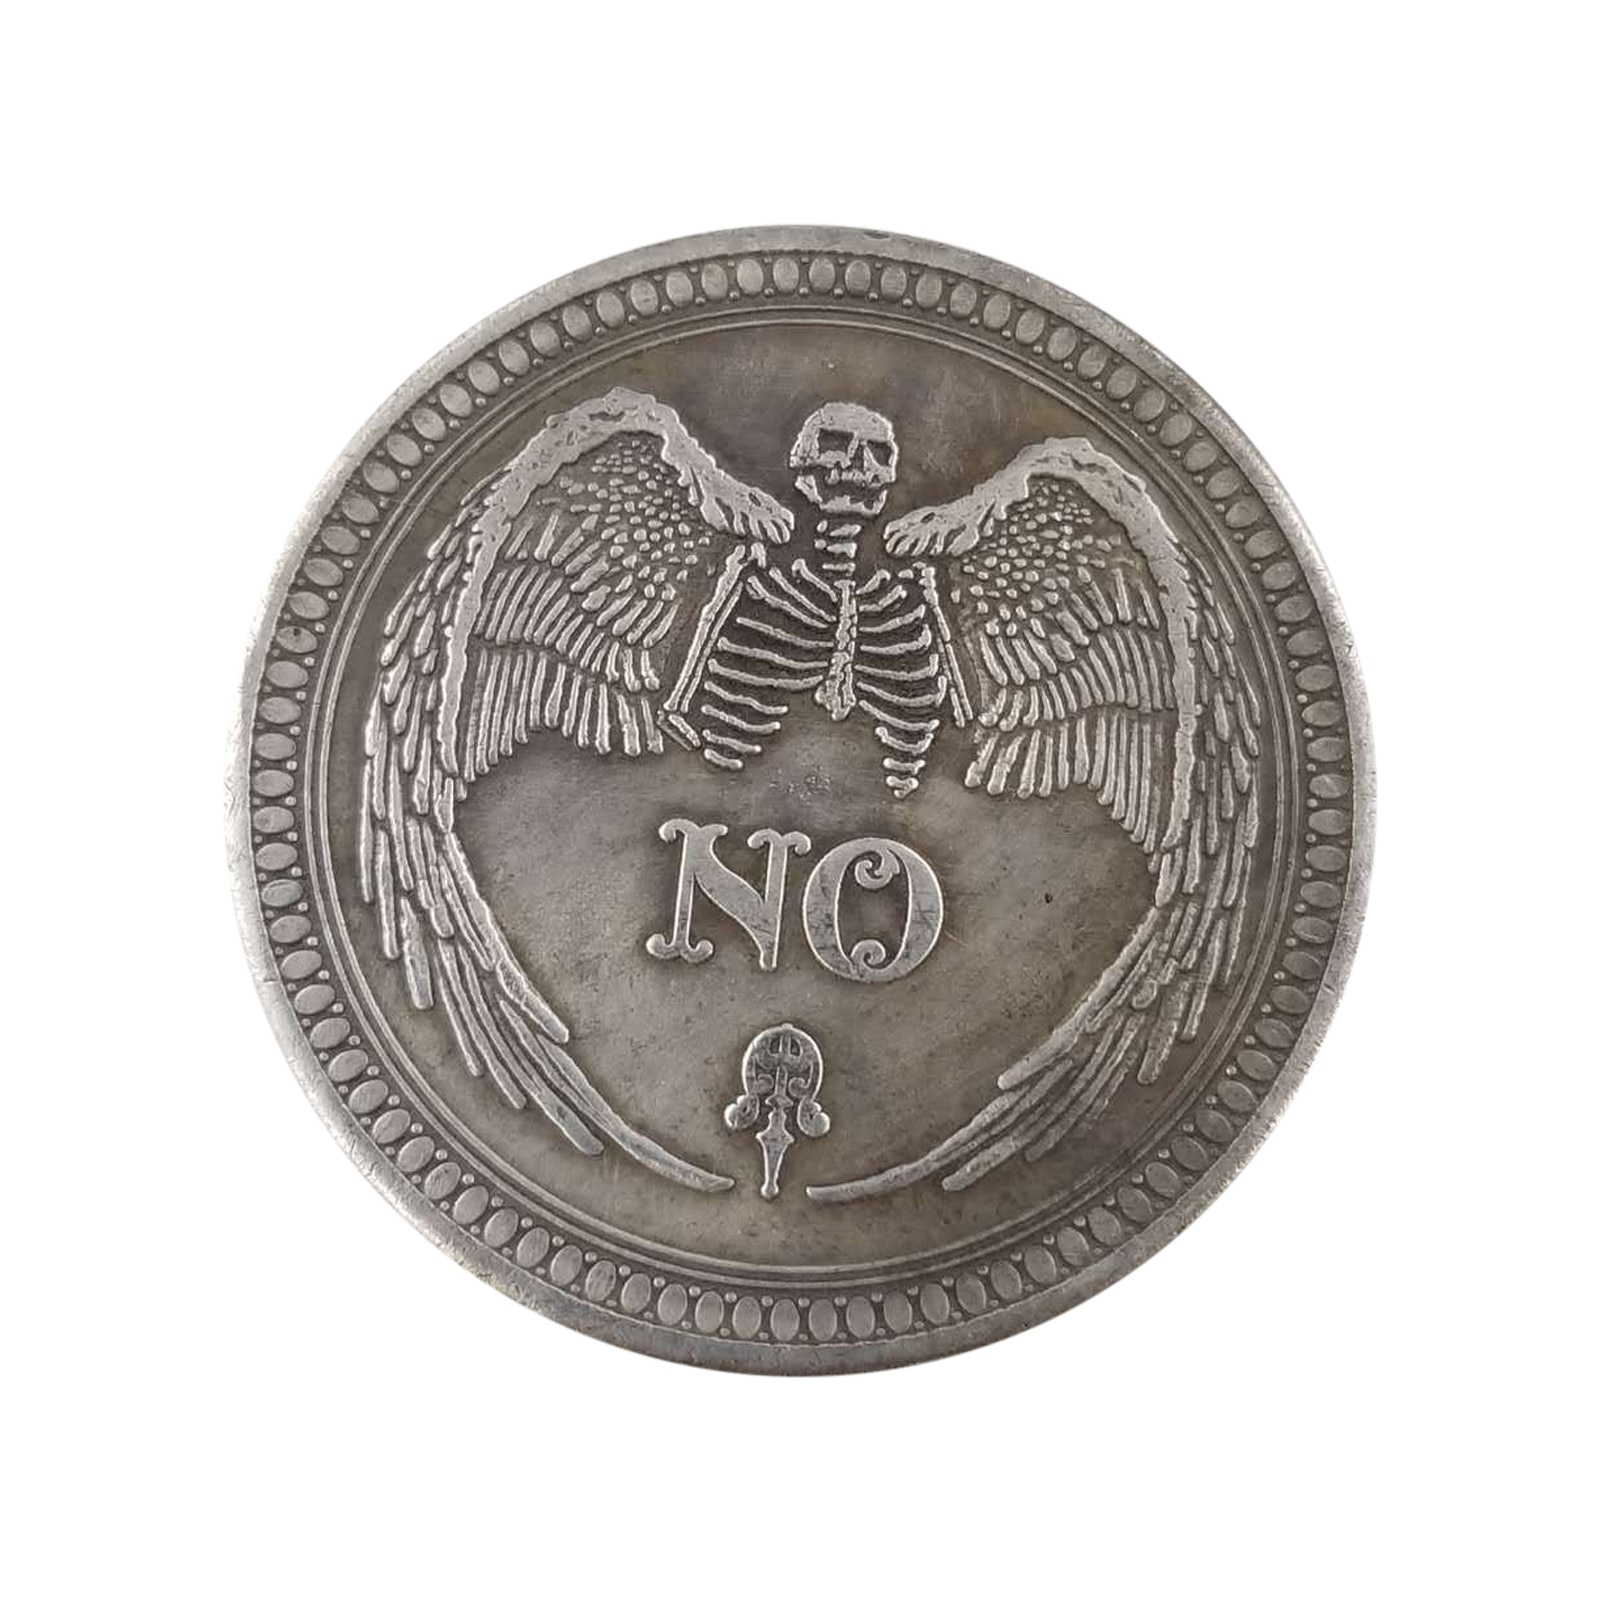 Creative Souvenir Coin zinc alloy Plated Yes or No Skull Commemorative Coin Collectible Great Gift Coins Art Collection Coins недорого